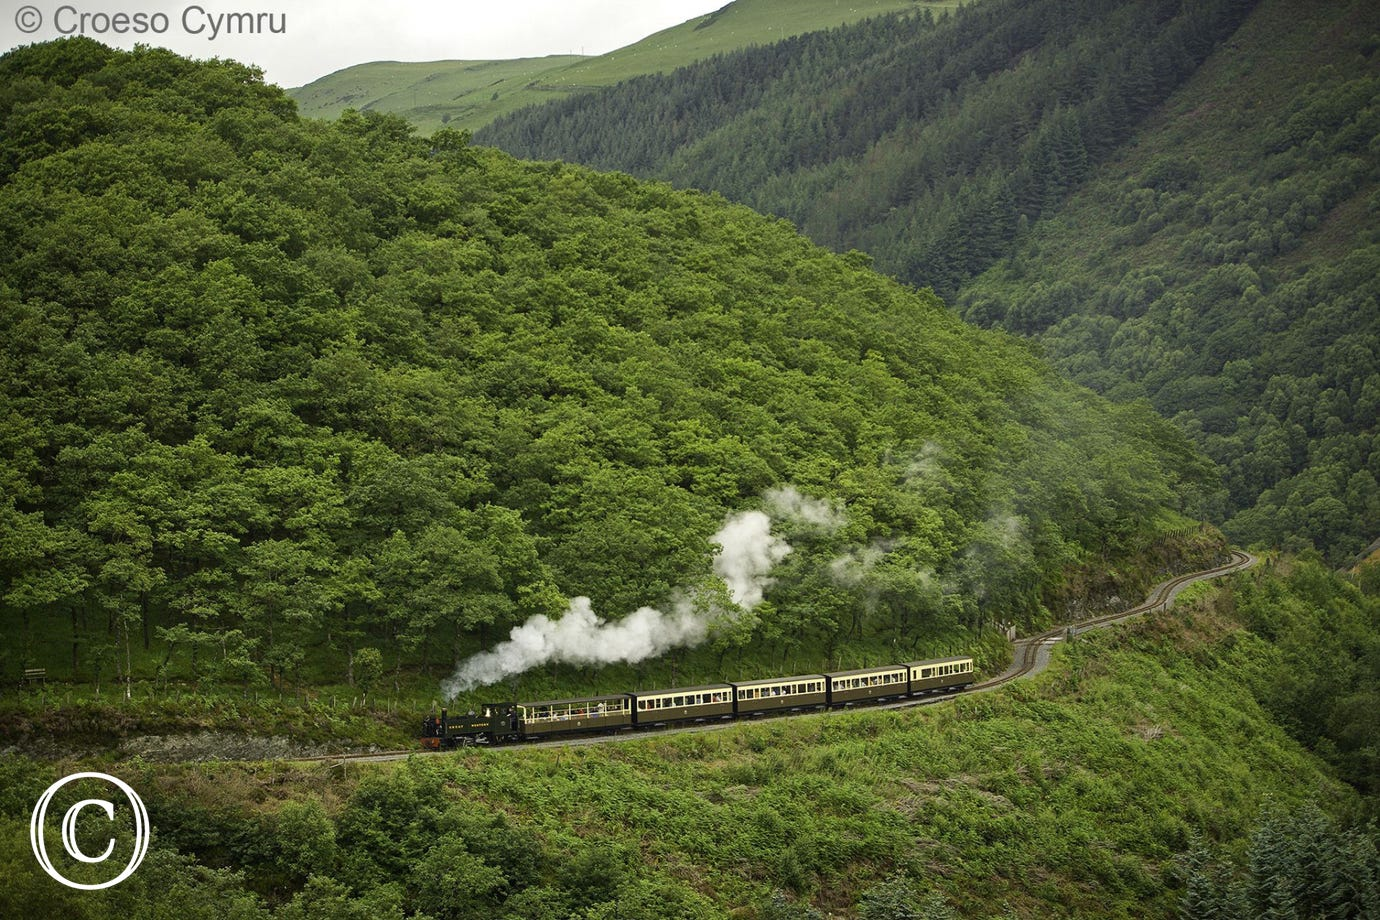 Vale of Rheidol narrow gauge railway - from Aberystwyth to Devils Bridge